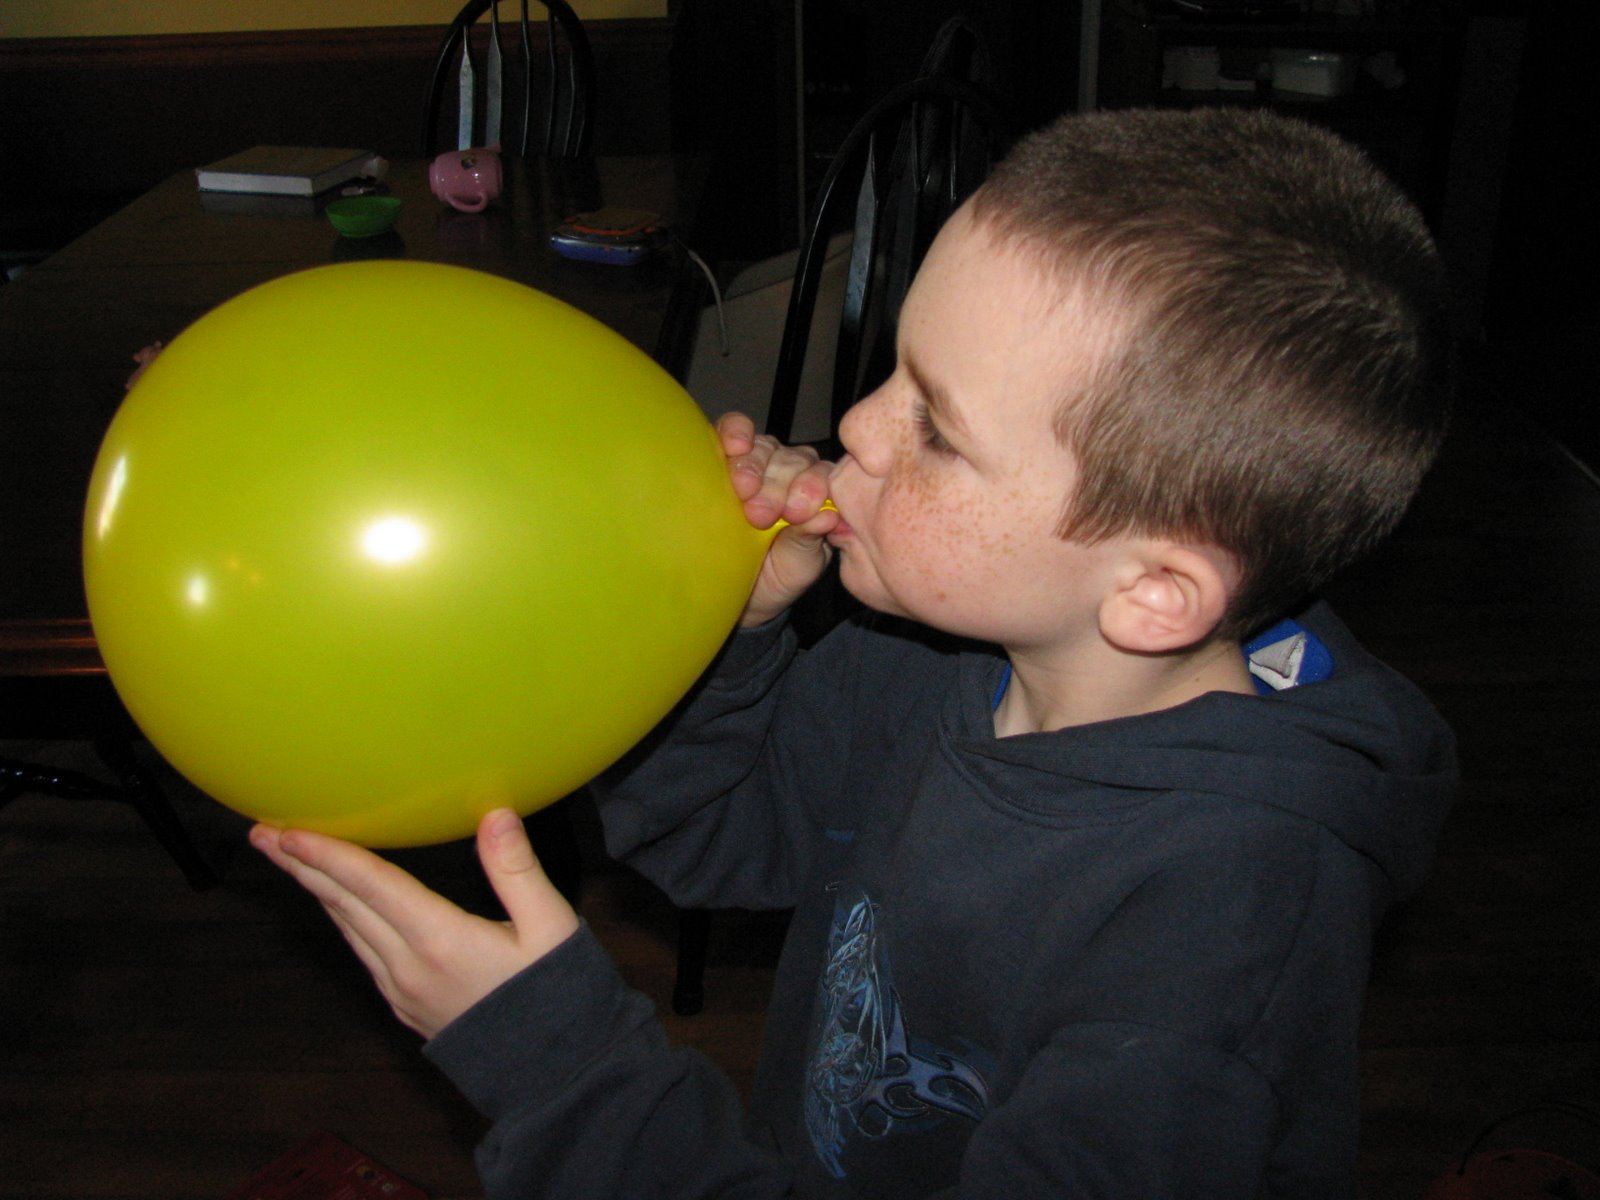 [blowing+up+balloons.jpg]